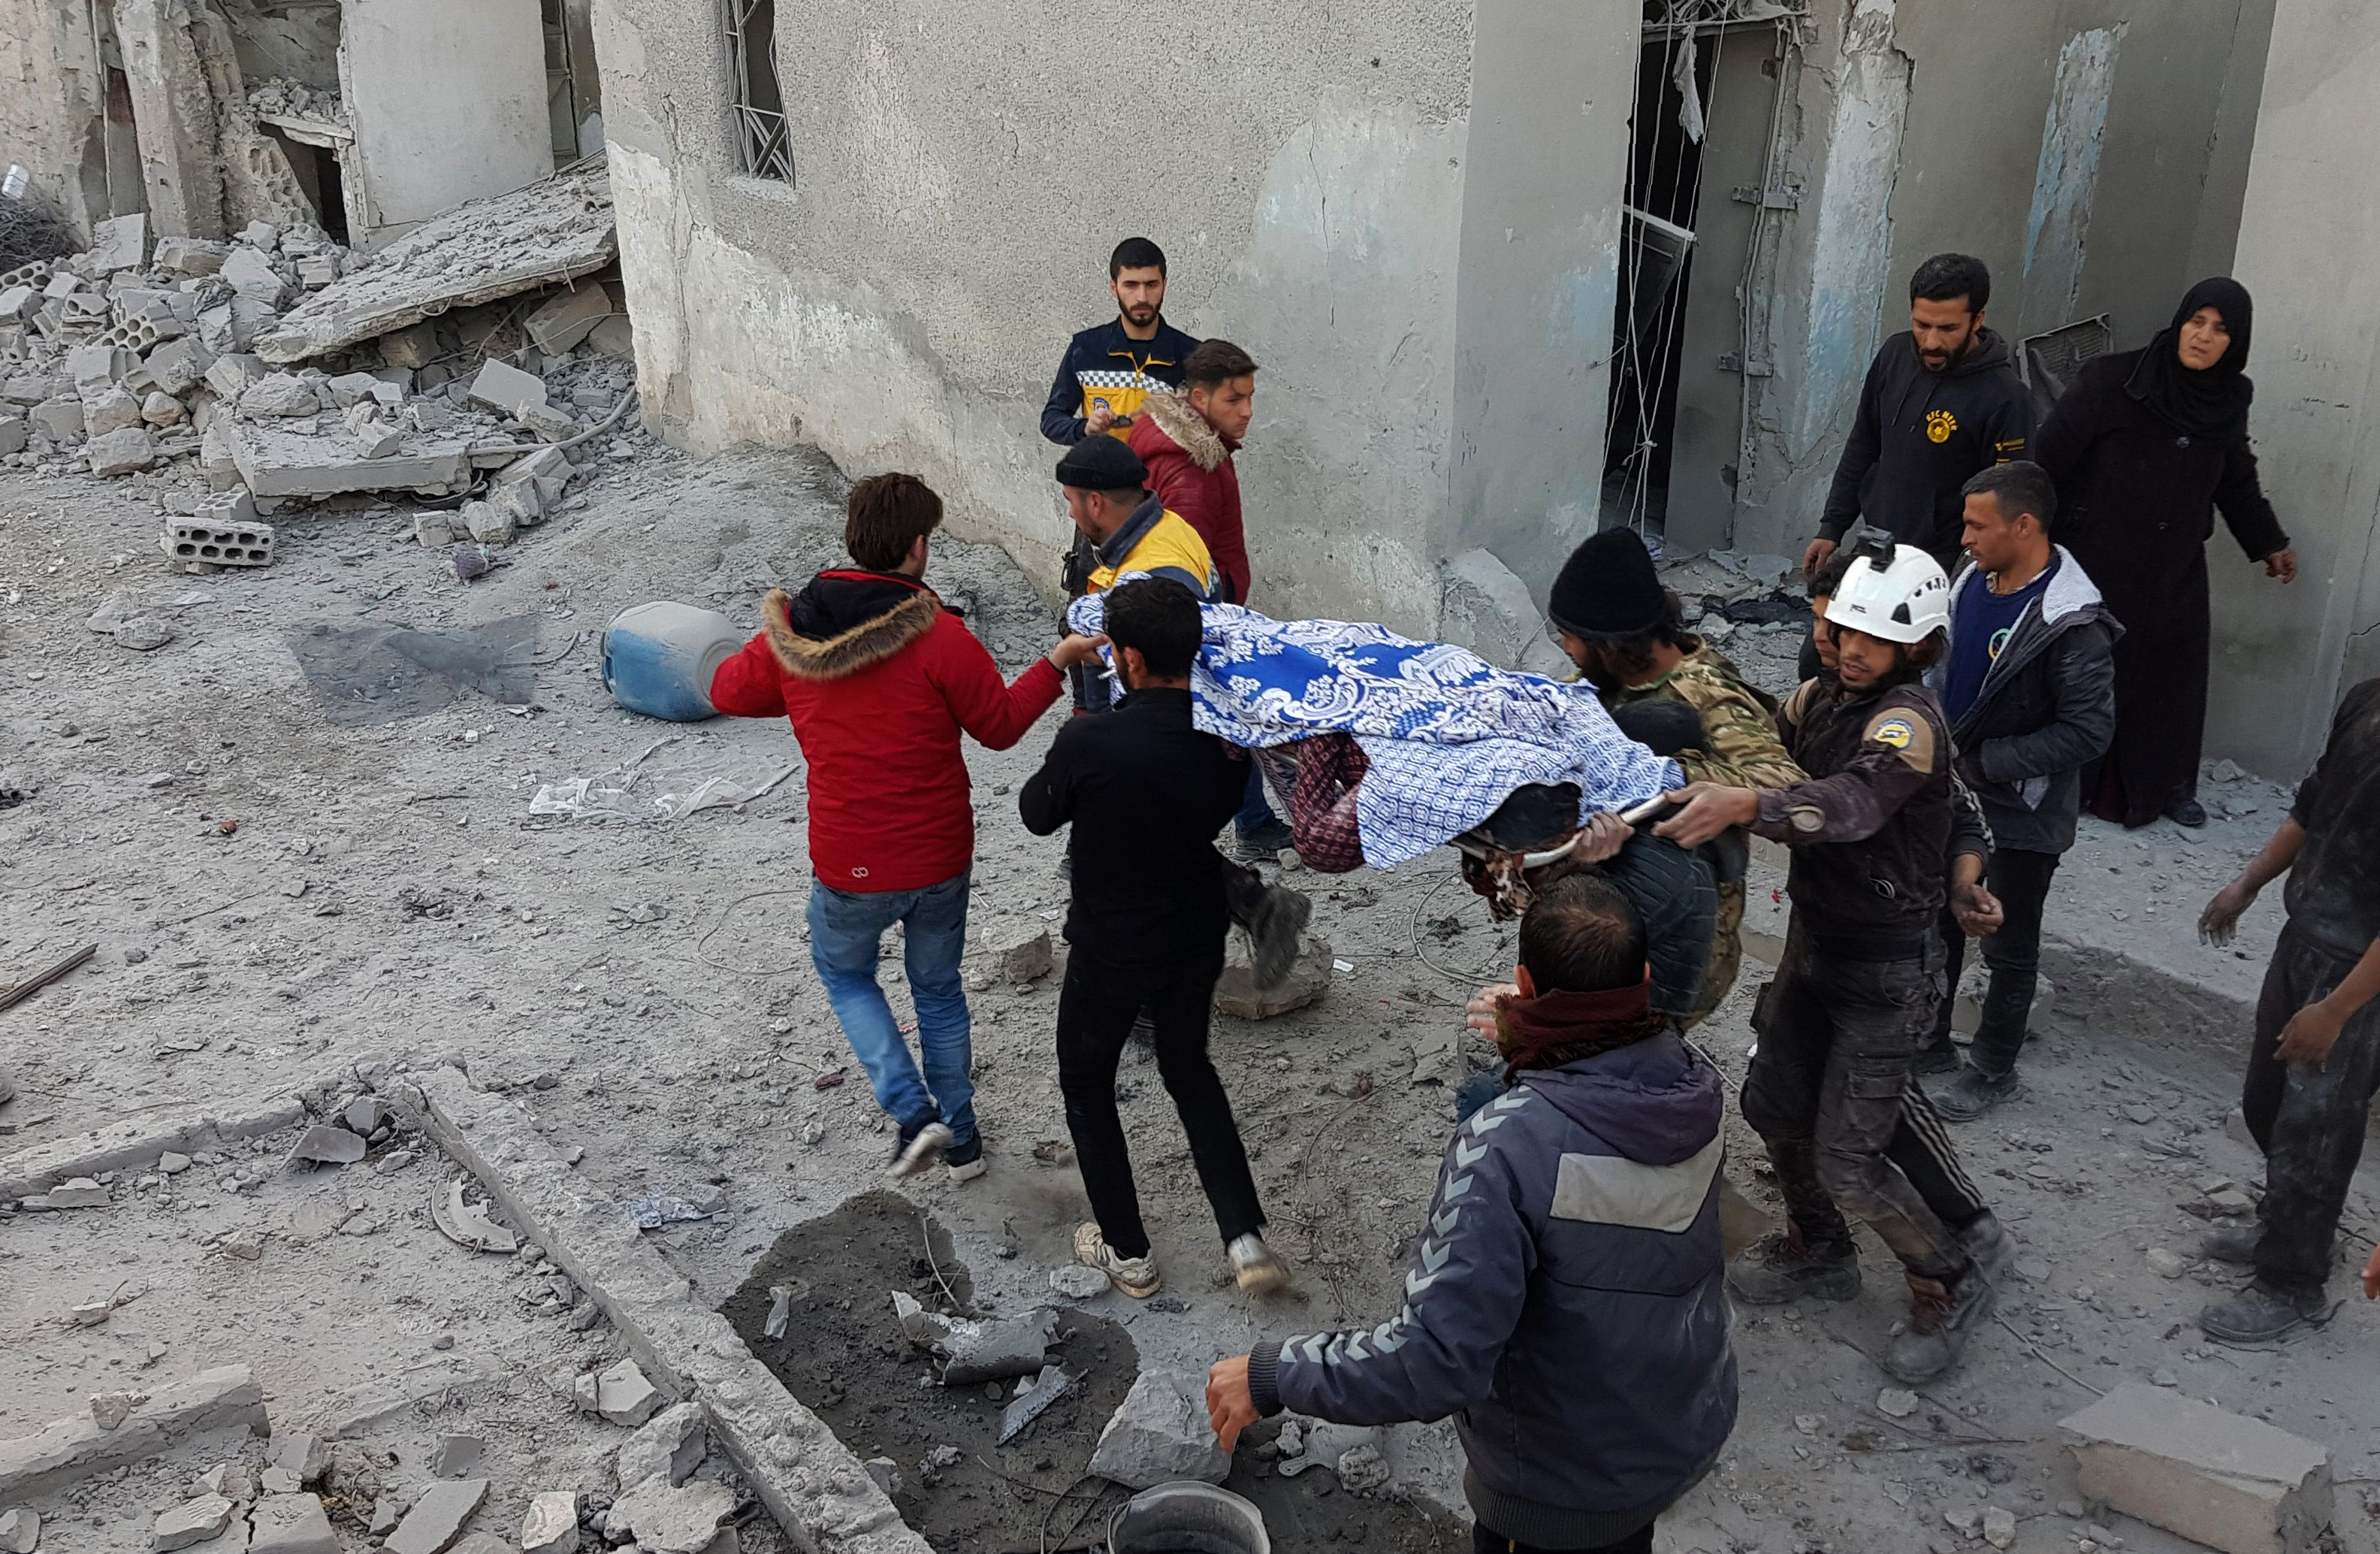 Civilians and rescuers carry the body of a victim following pro-regime forces air strikes in the town of Binnish in Syrias northwestern Idlib province, near the border with Turkey on February 25, 2020. (Photo by MUHAMMAD HAJ KADOUR/AFP via Getty Images)